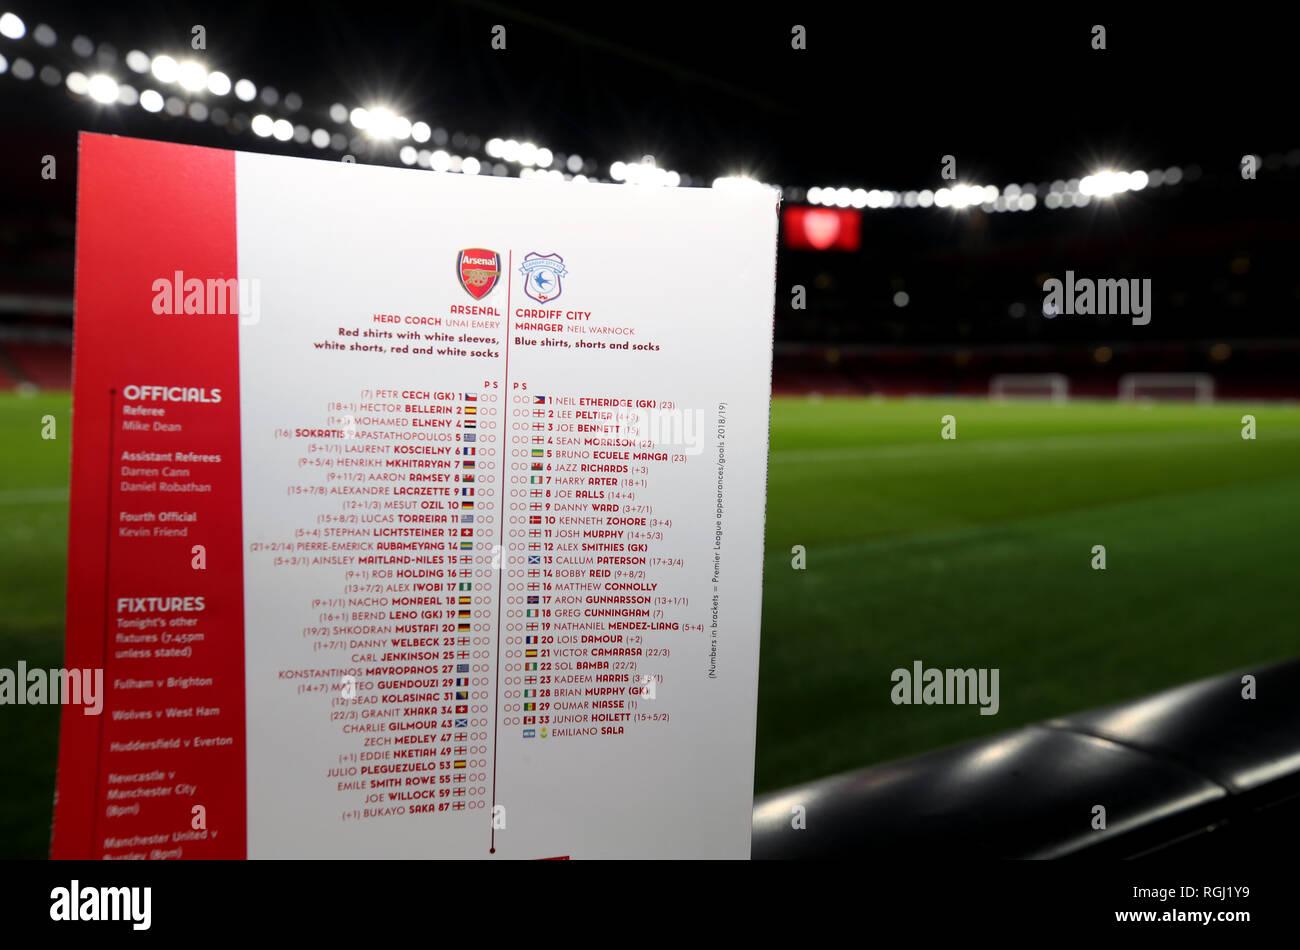 The Match Day Programme For Arsenal V Cardiff Featuring The Squad Lists On The Back And The Name Of Emiliano Sala During The Premier League Match At The Emirates Stadium London Stock